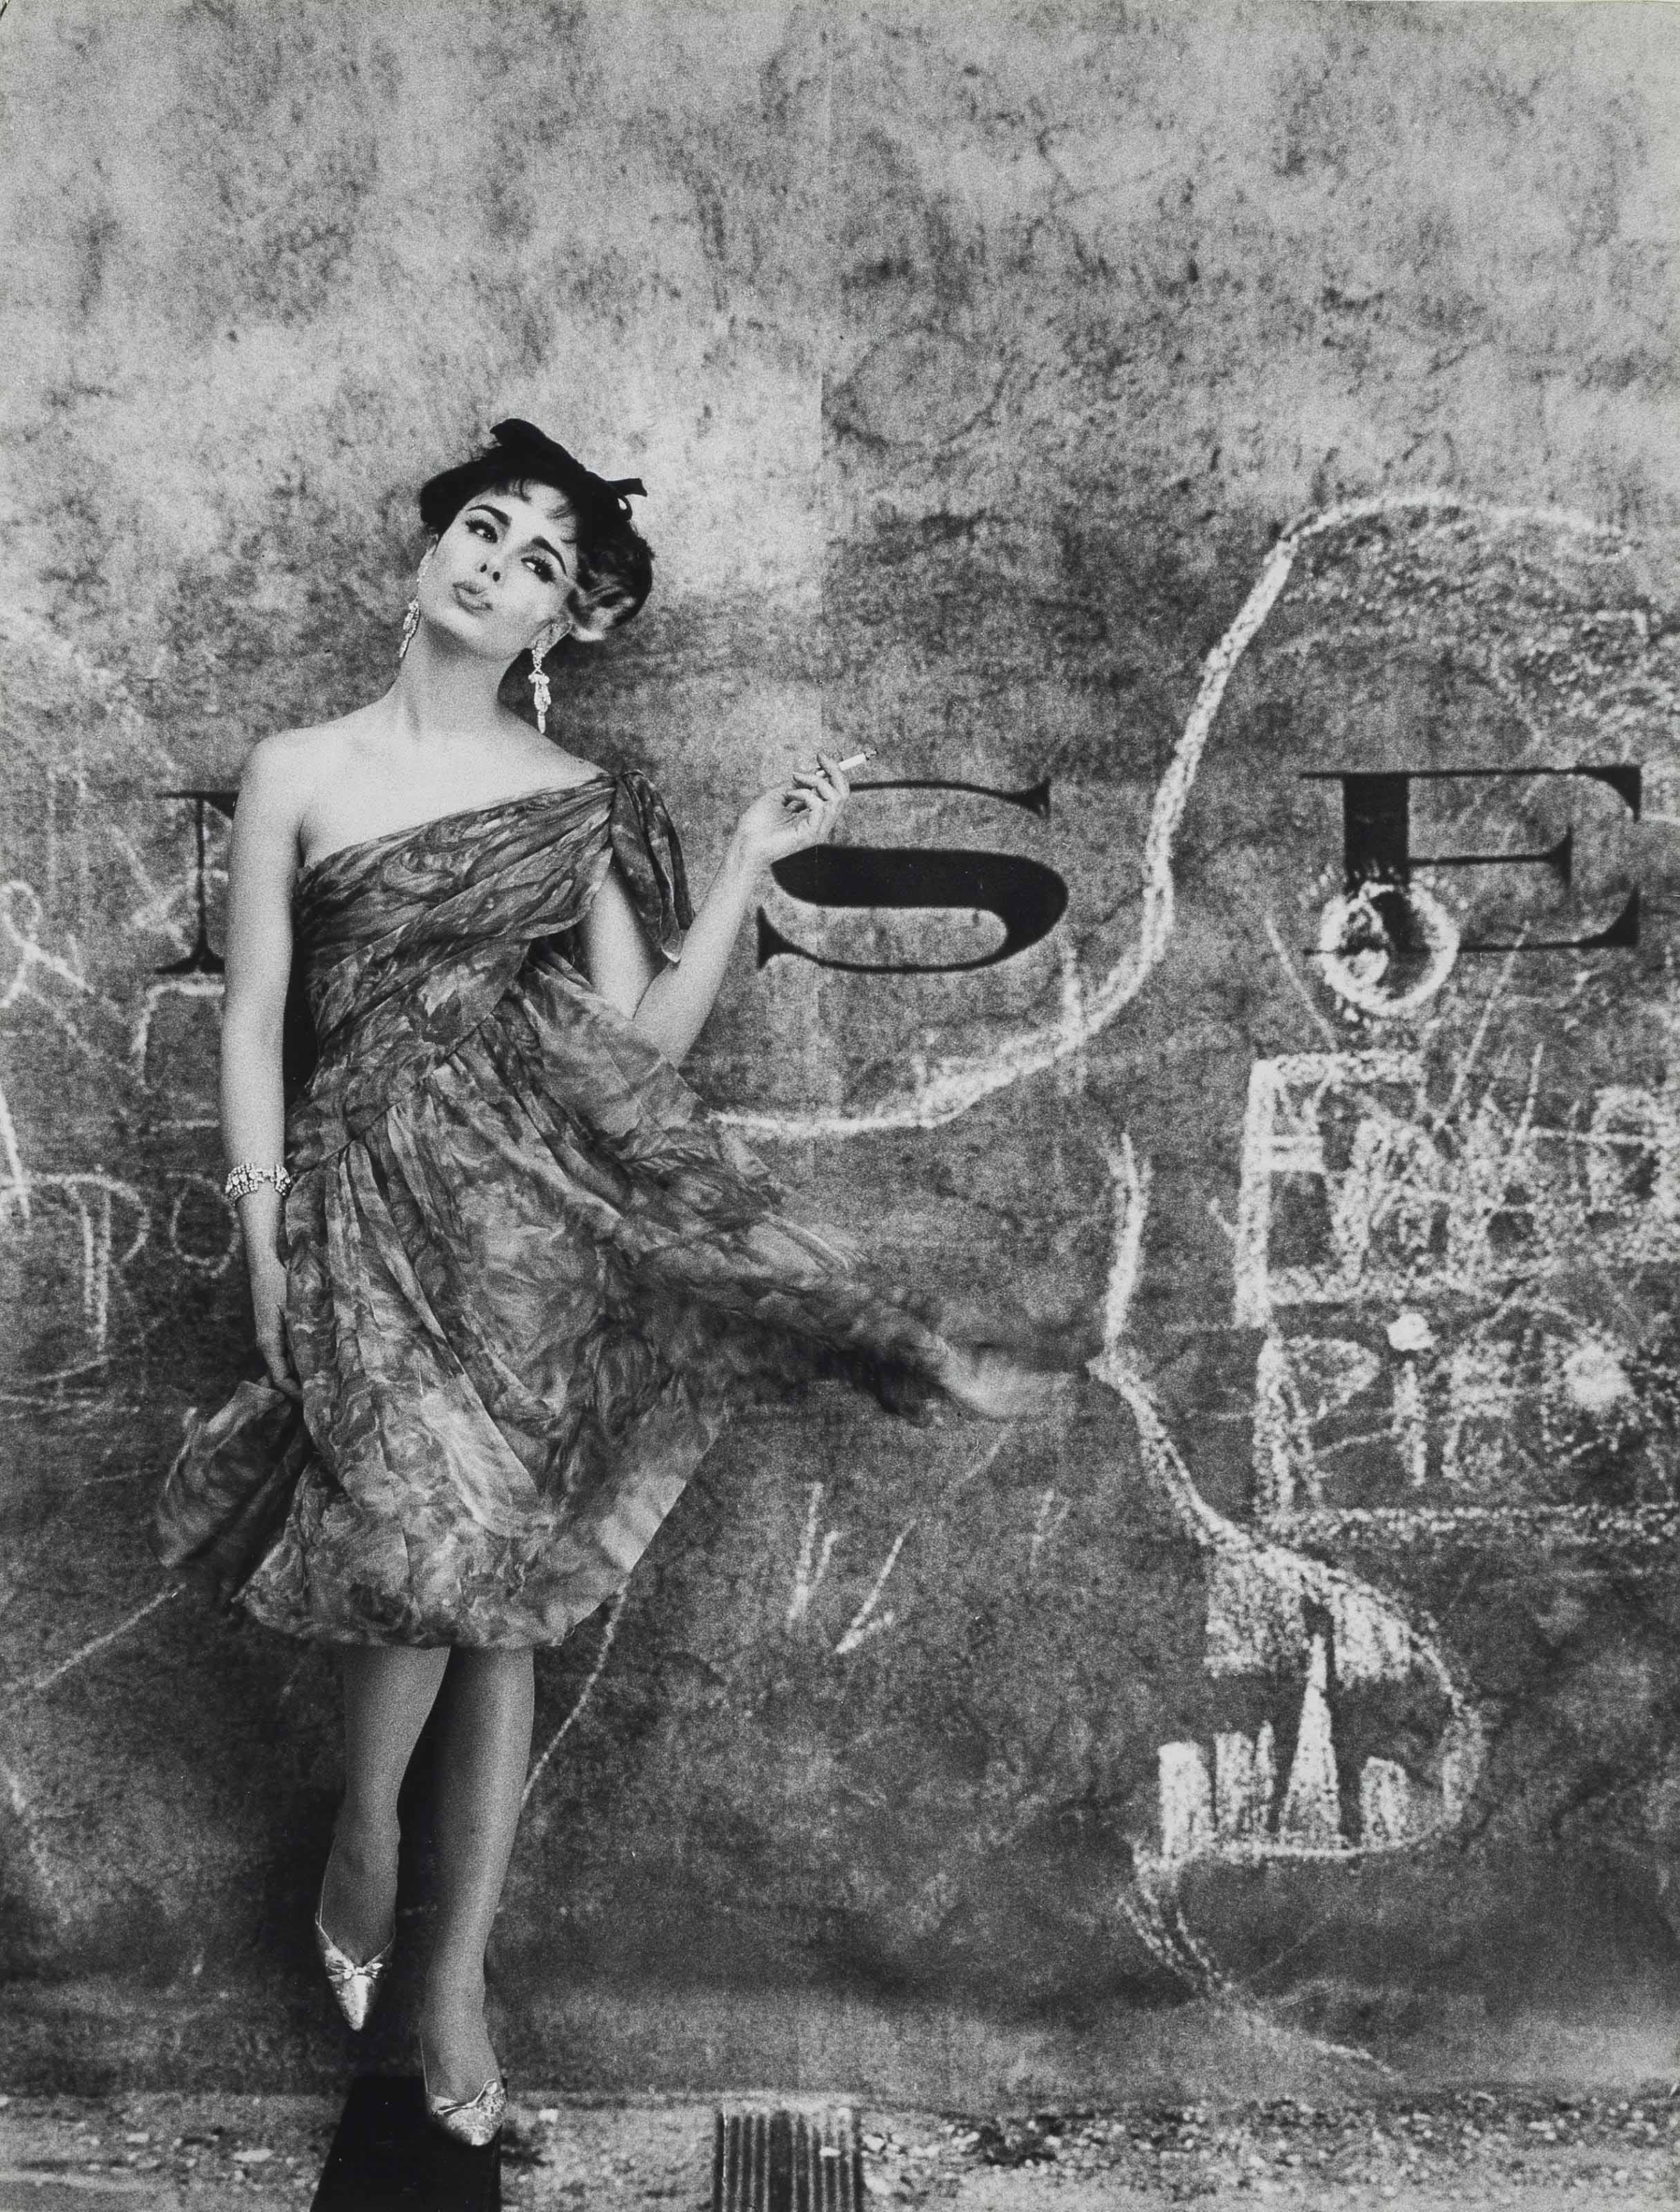 Model and Graffiti, Paris (Vogue), 1961